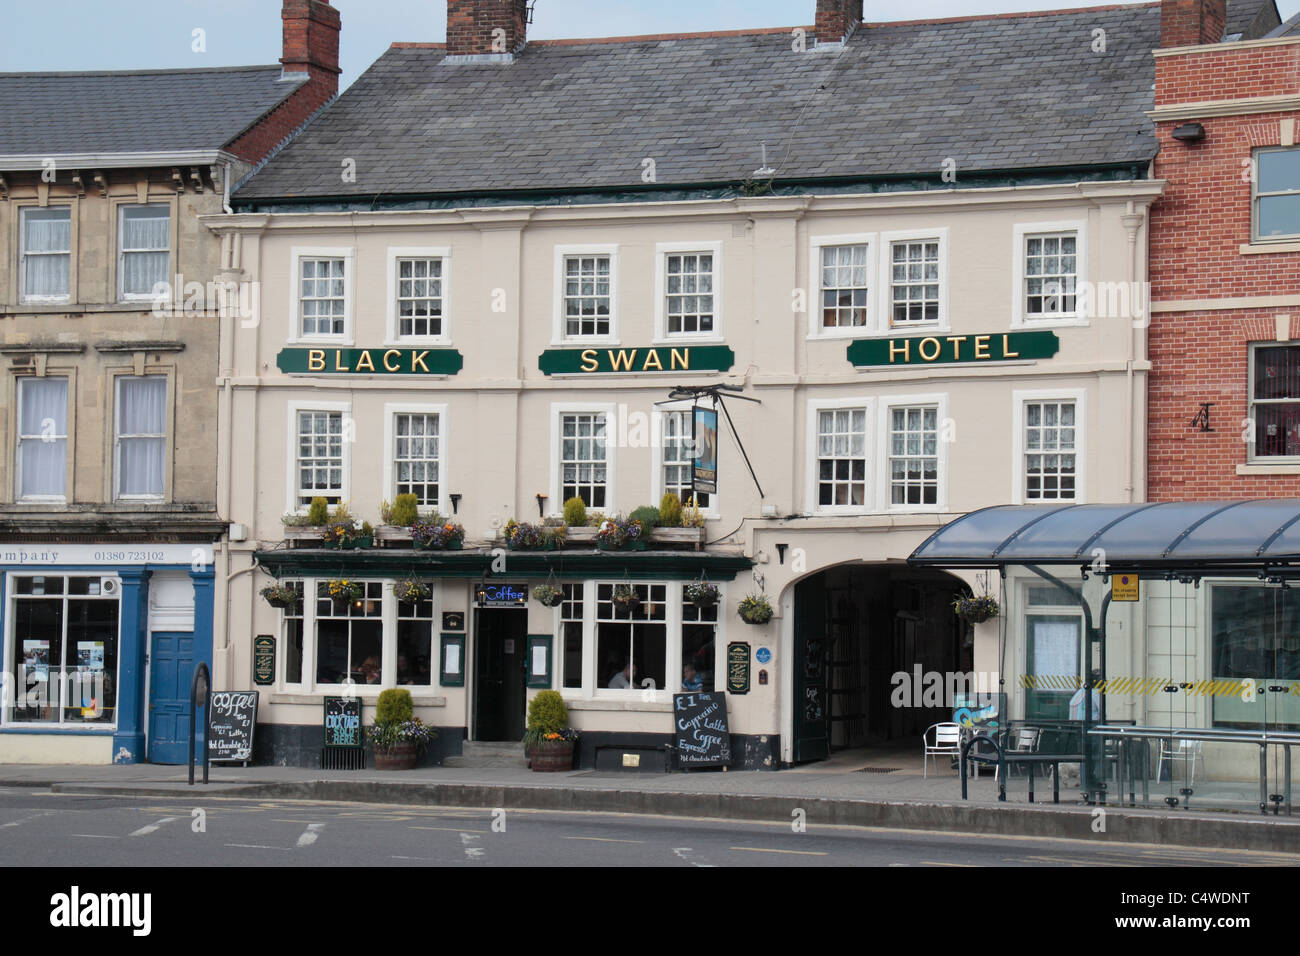 The Black Swan Hotel and public house in Devizes, Wiltshire, England. - Stock Image